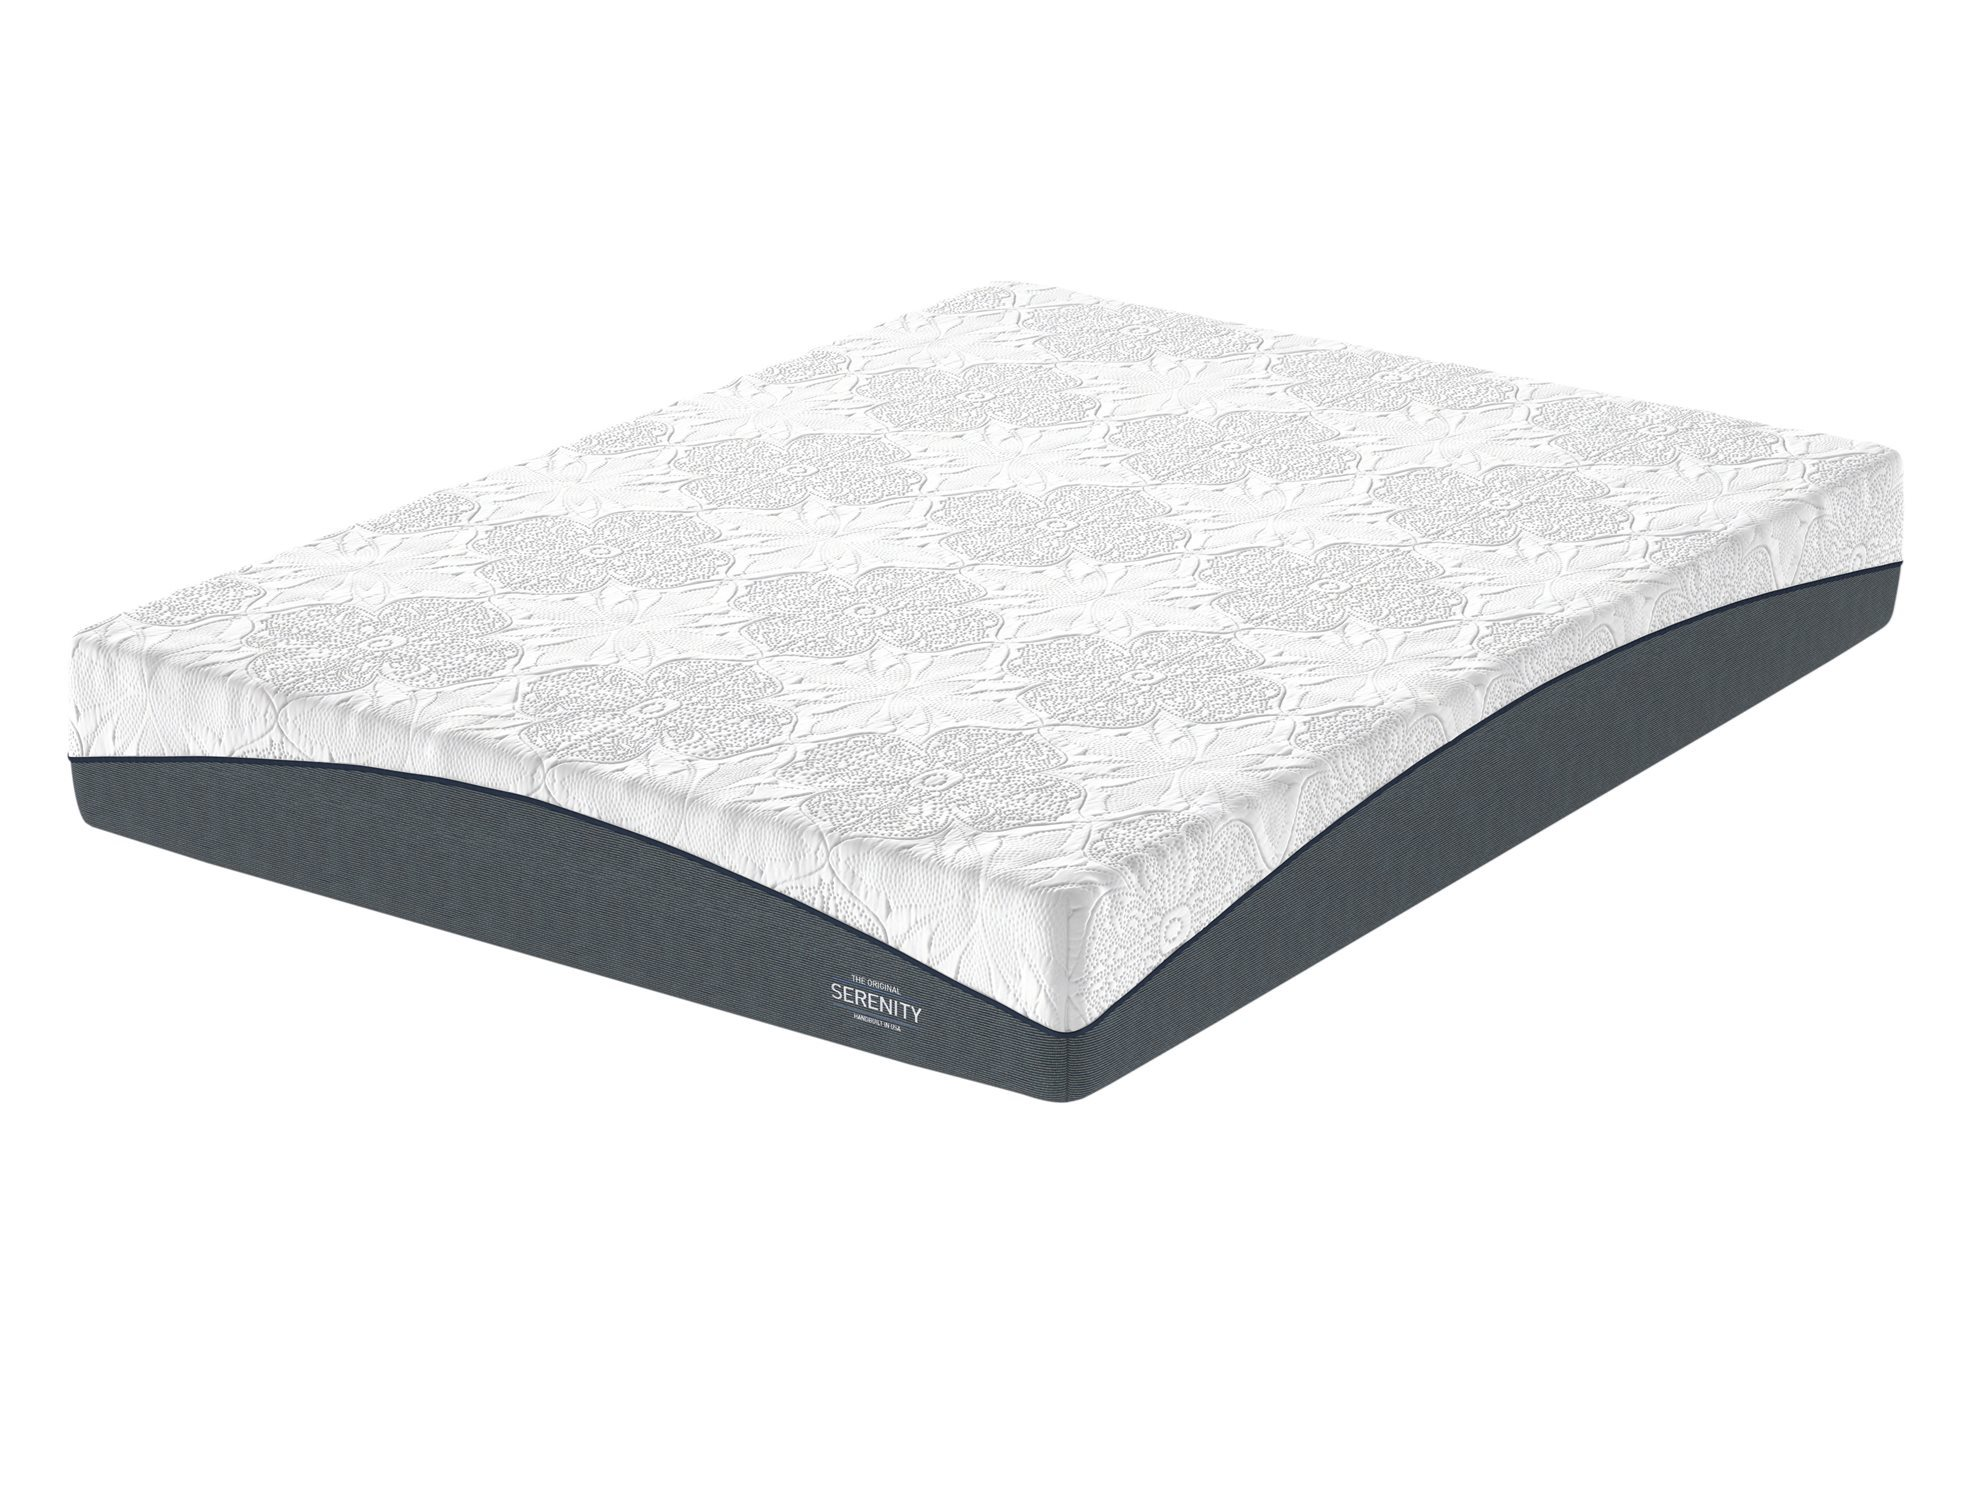 Firmest Mattresses On The Market Mattresses Serenity Mattress